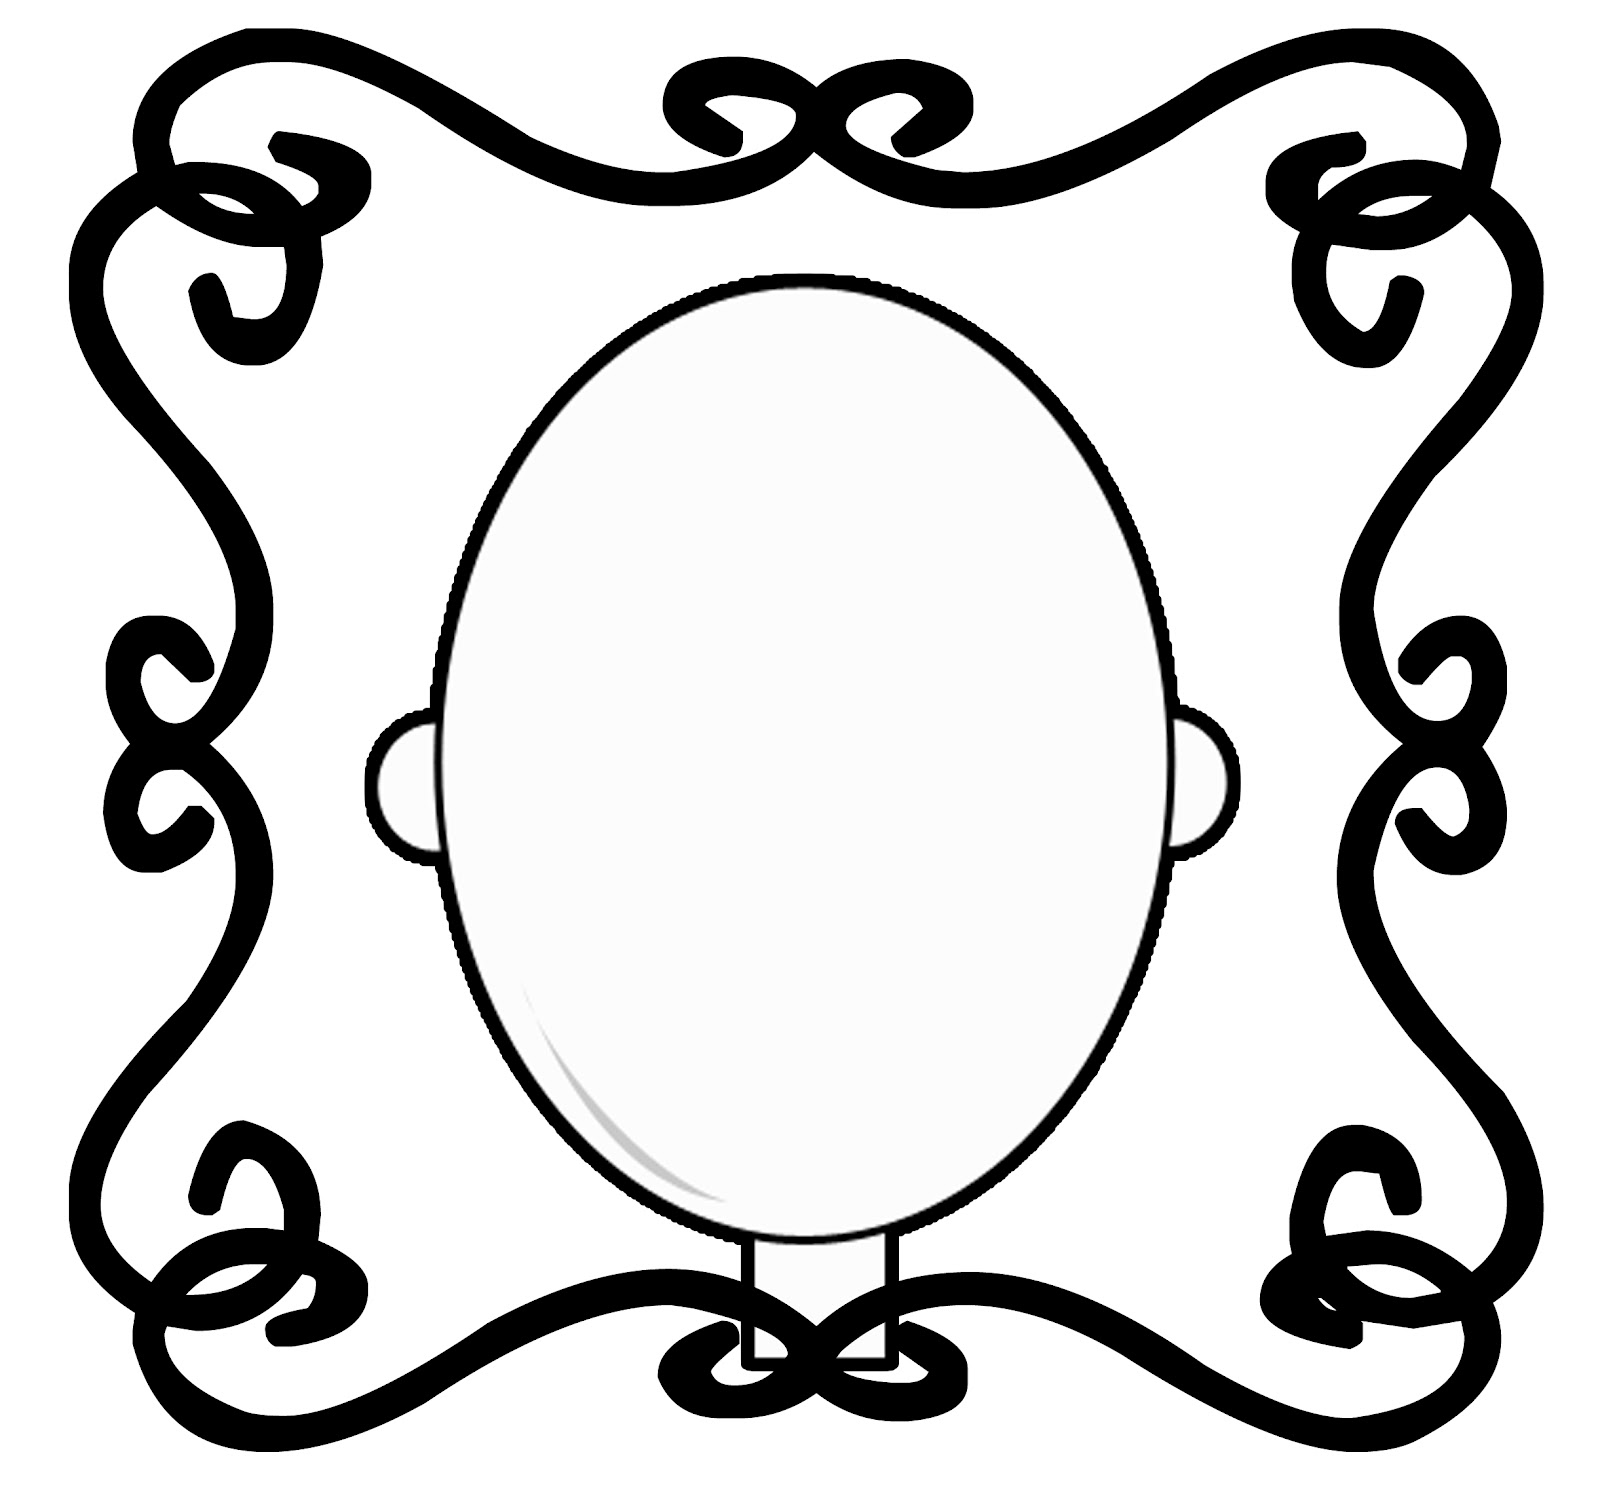 Free Blank Face Template Download Free Clip Art Free Clip Art On Clipart Library